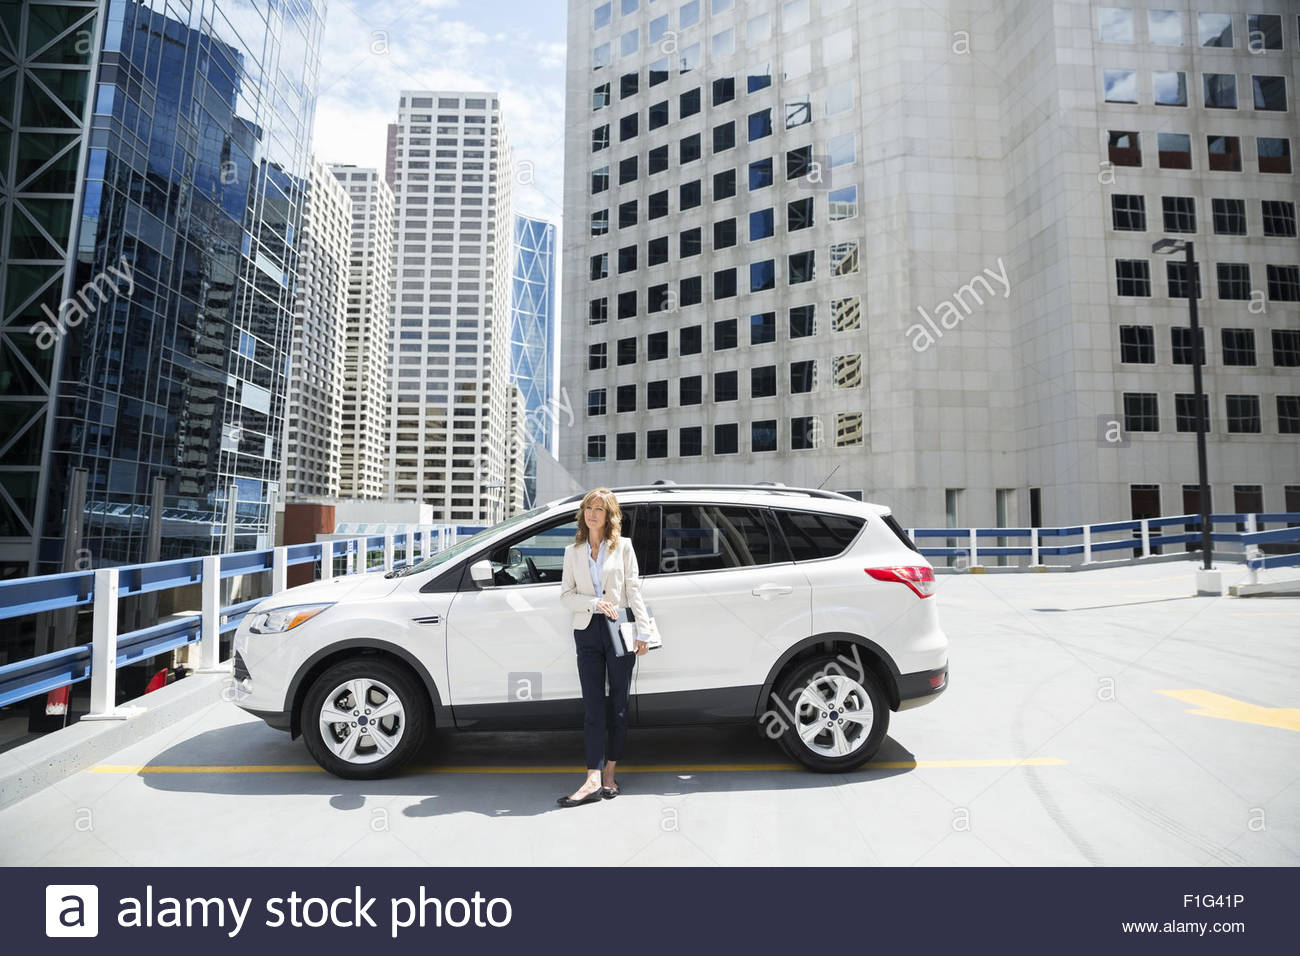 Portrait businesswoman outside car in city parking lot - Stock Image